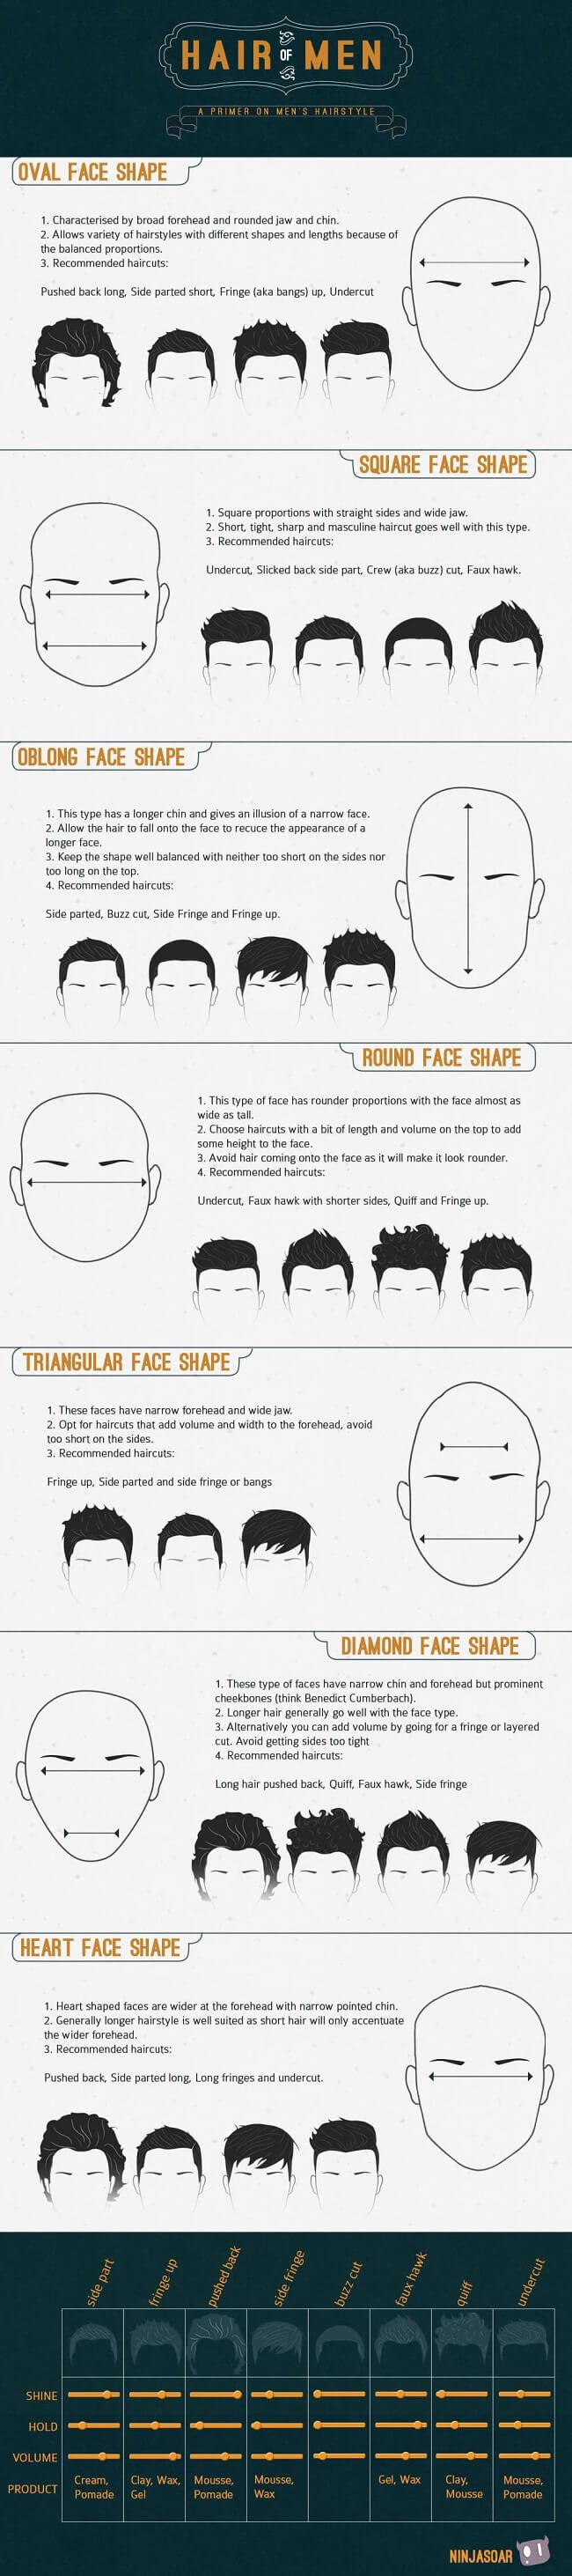 Short top haircut for men tips to choose the right menus haircut for your face shape  soften